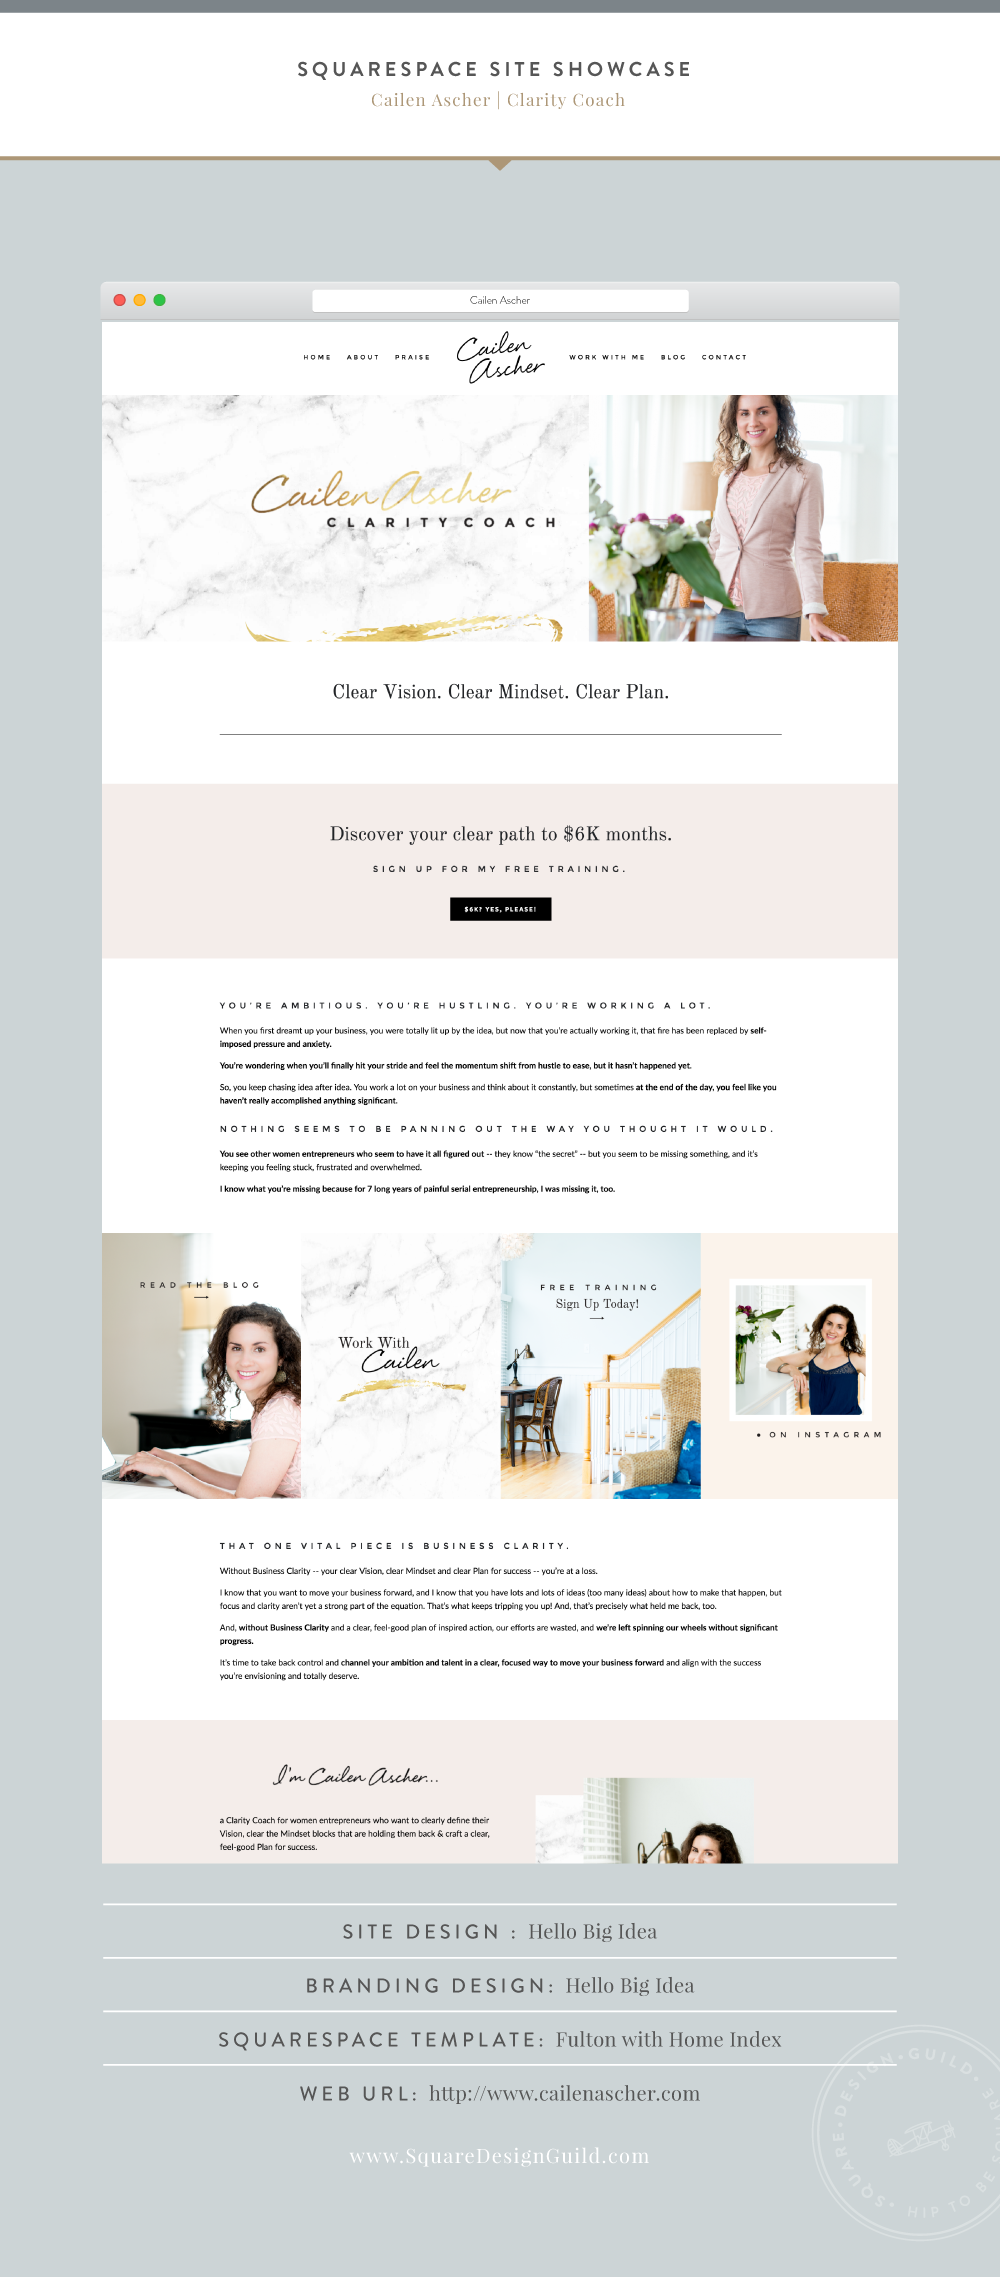 Squarespace Design Guild | Site Showcase | Cailen Ascher by Hello Big Idea Fulton Template for Squarespace